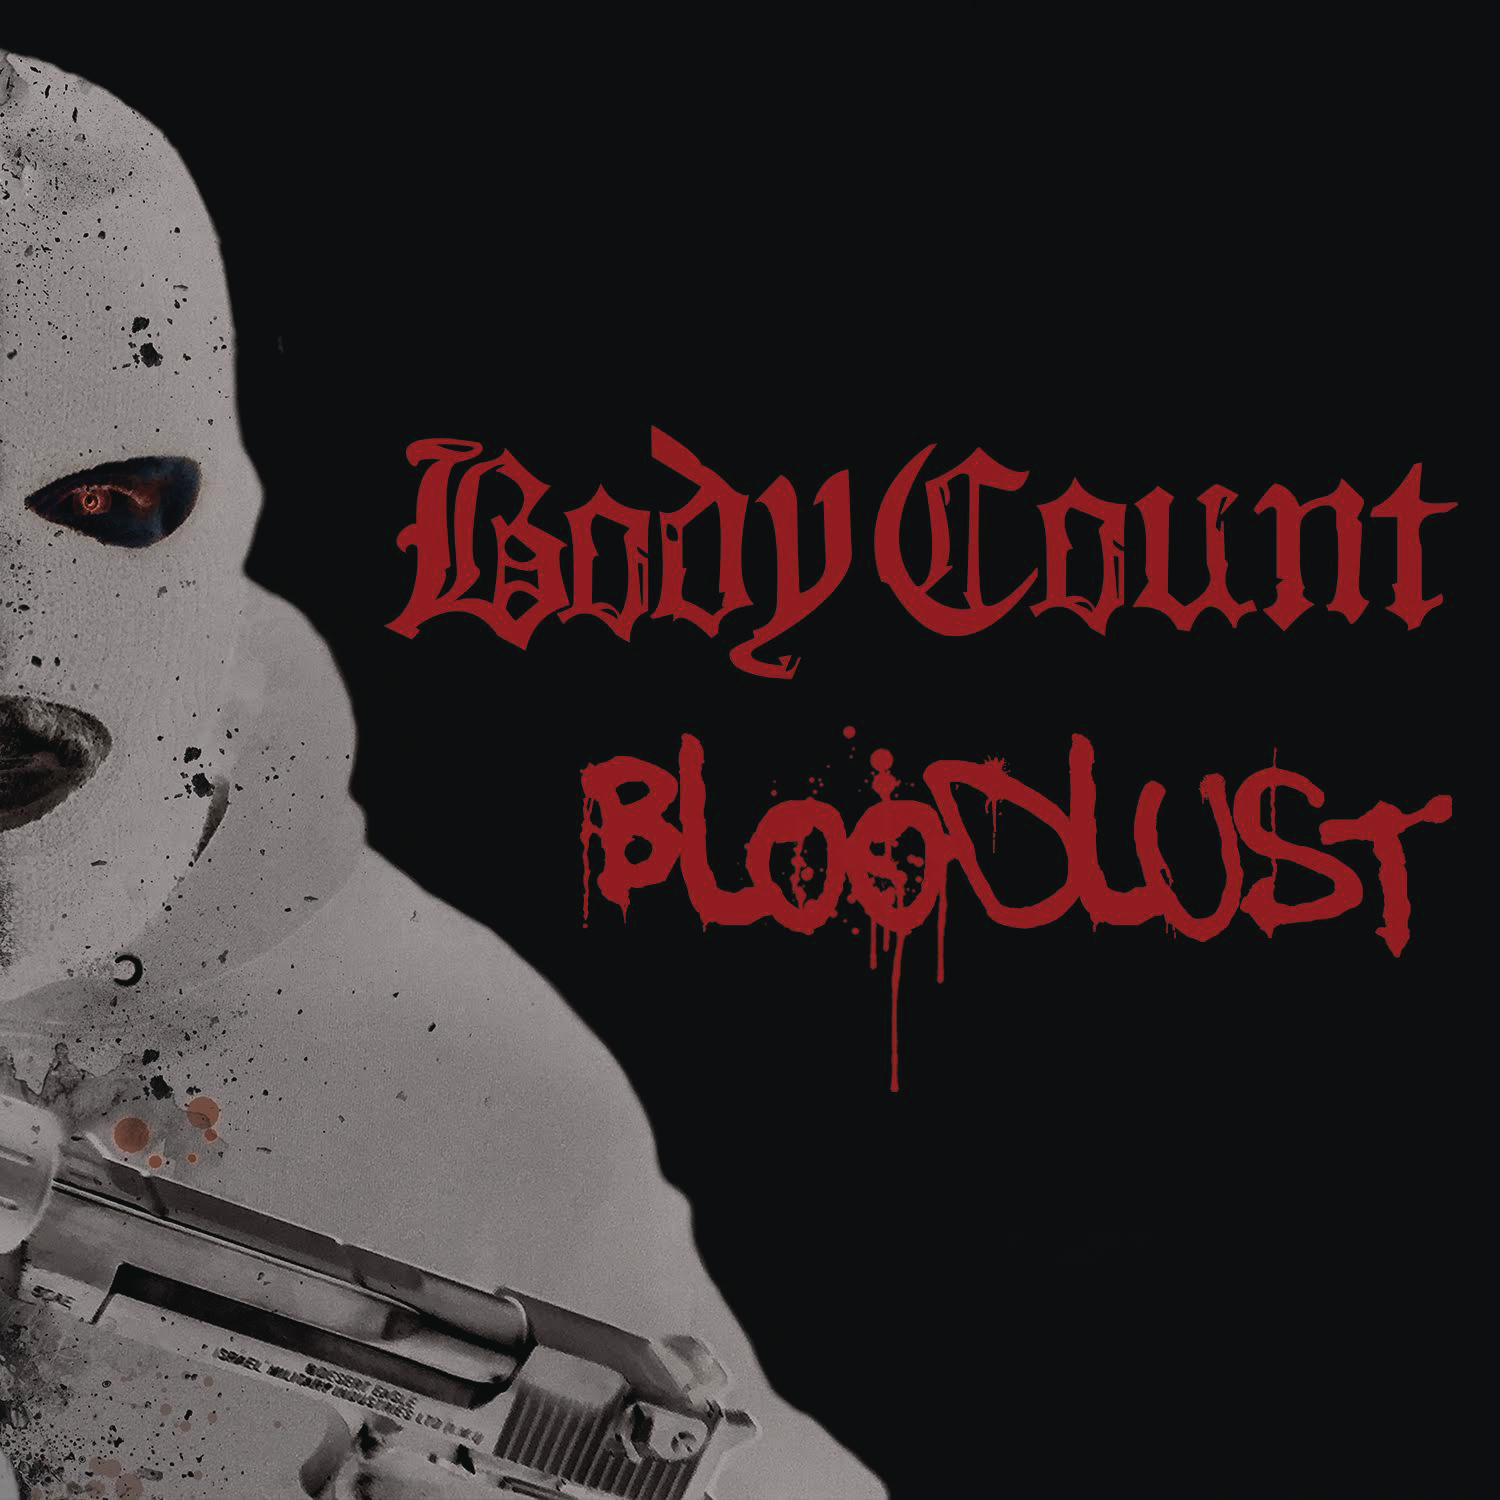 Body Count - The Ski Mask Way [single] (2017)